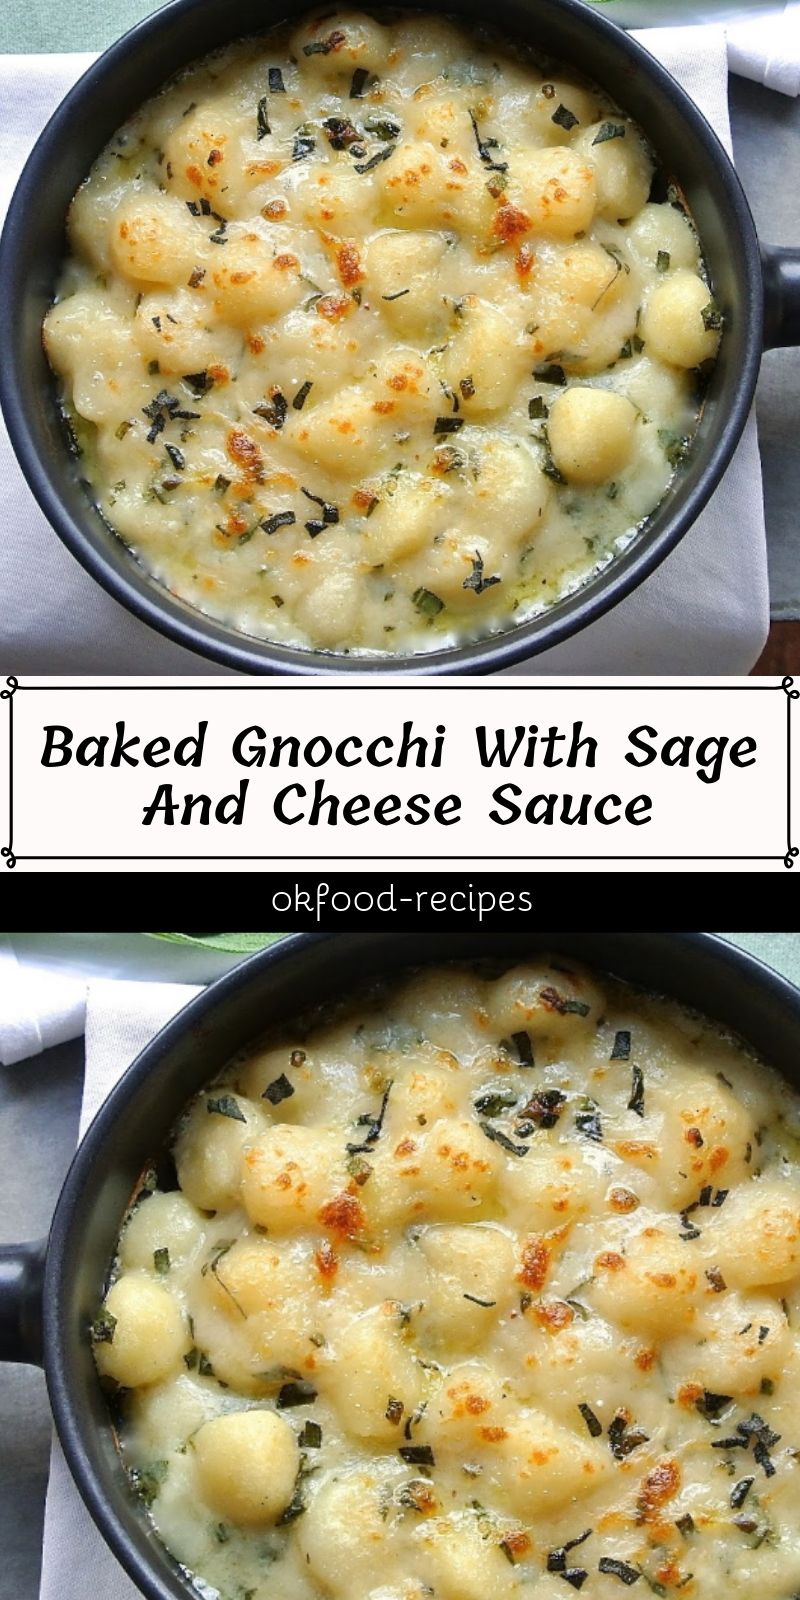 Baked Gnocchi With Sage And Cheese Sauce